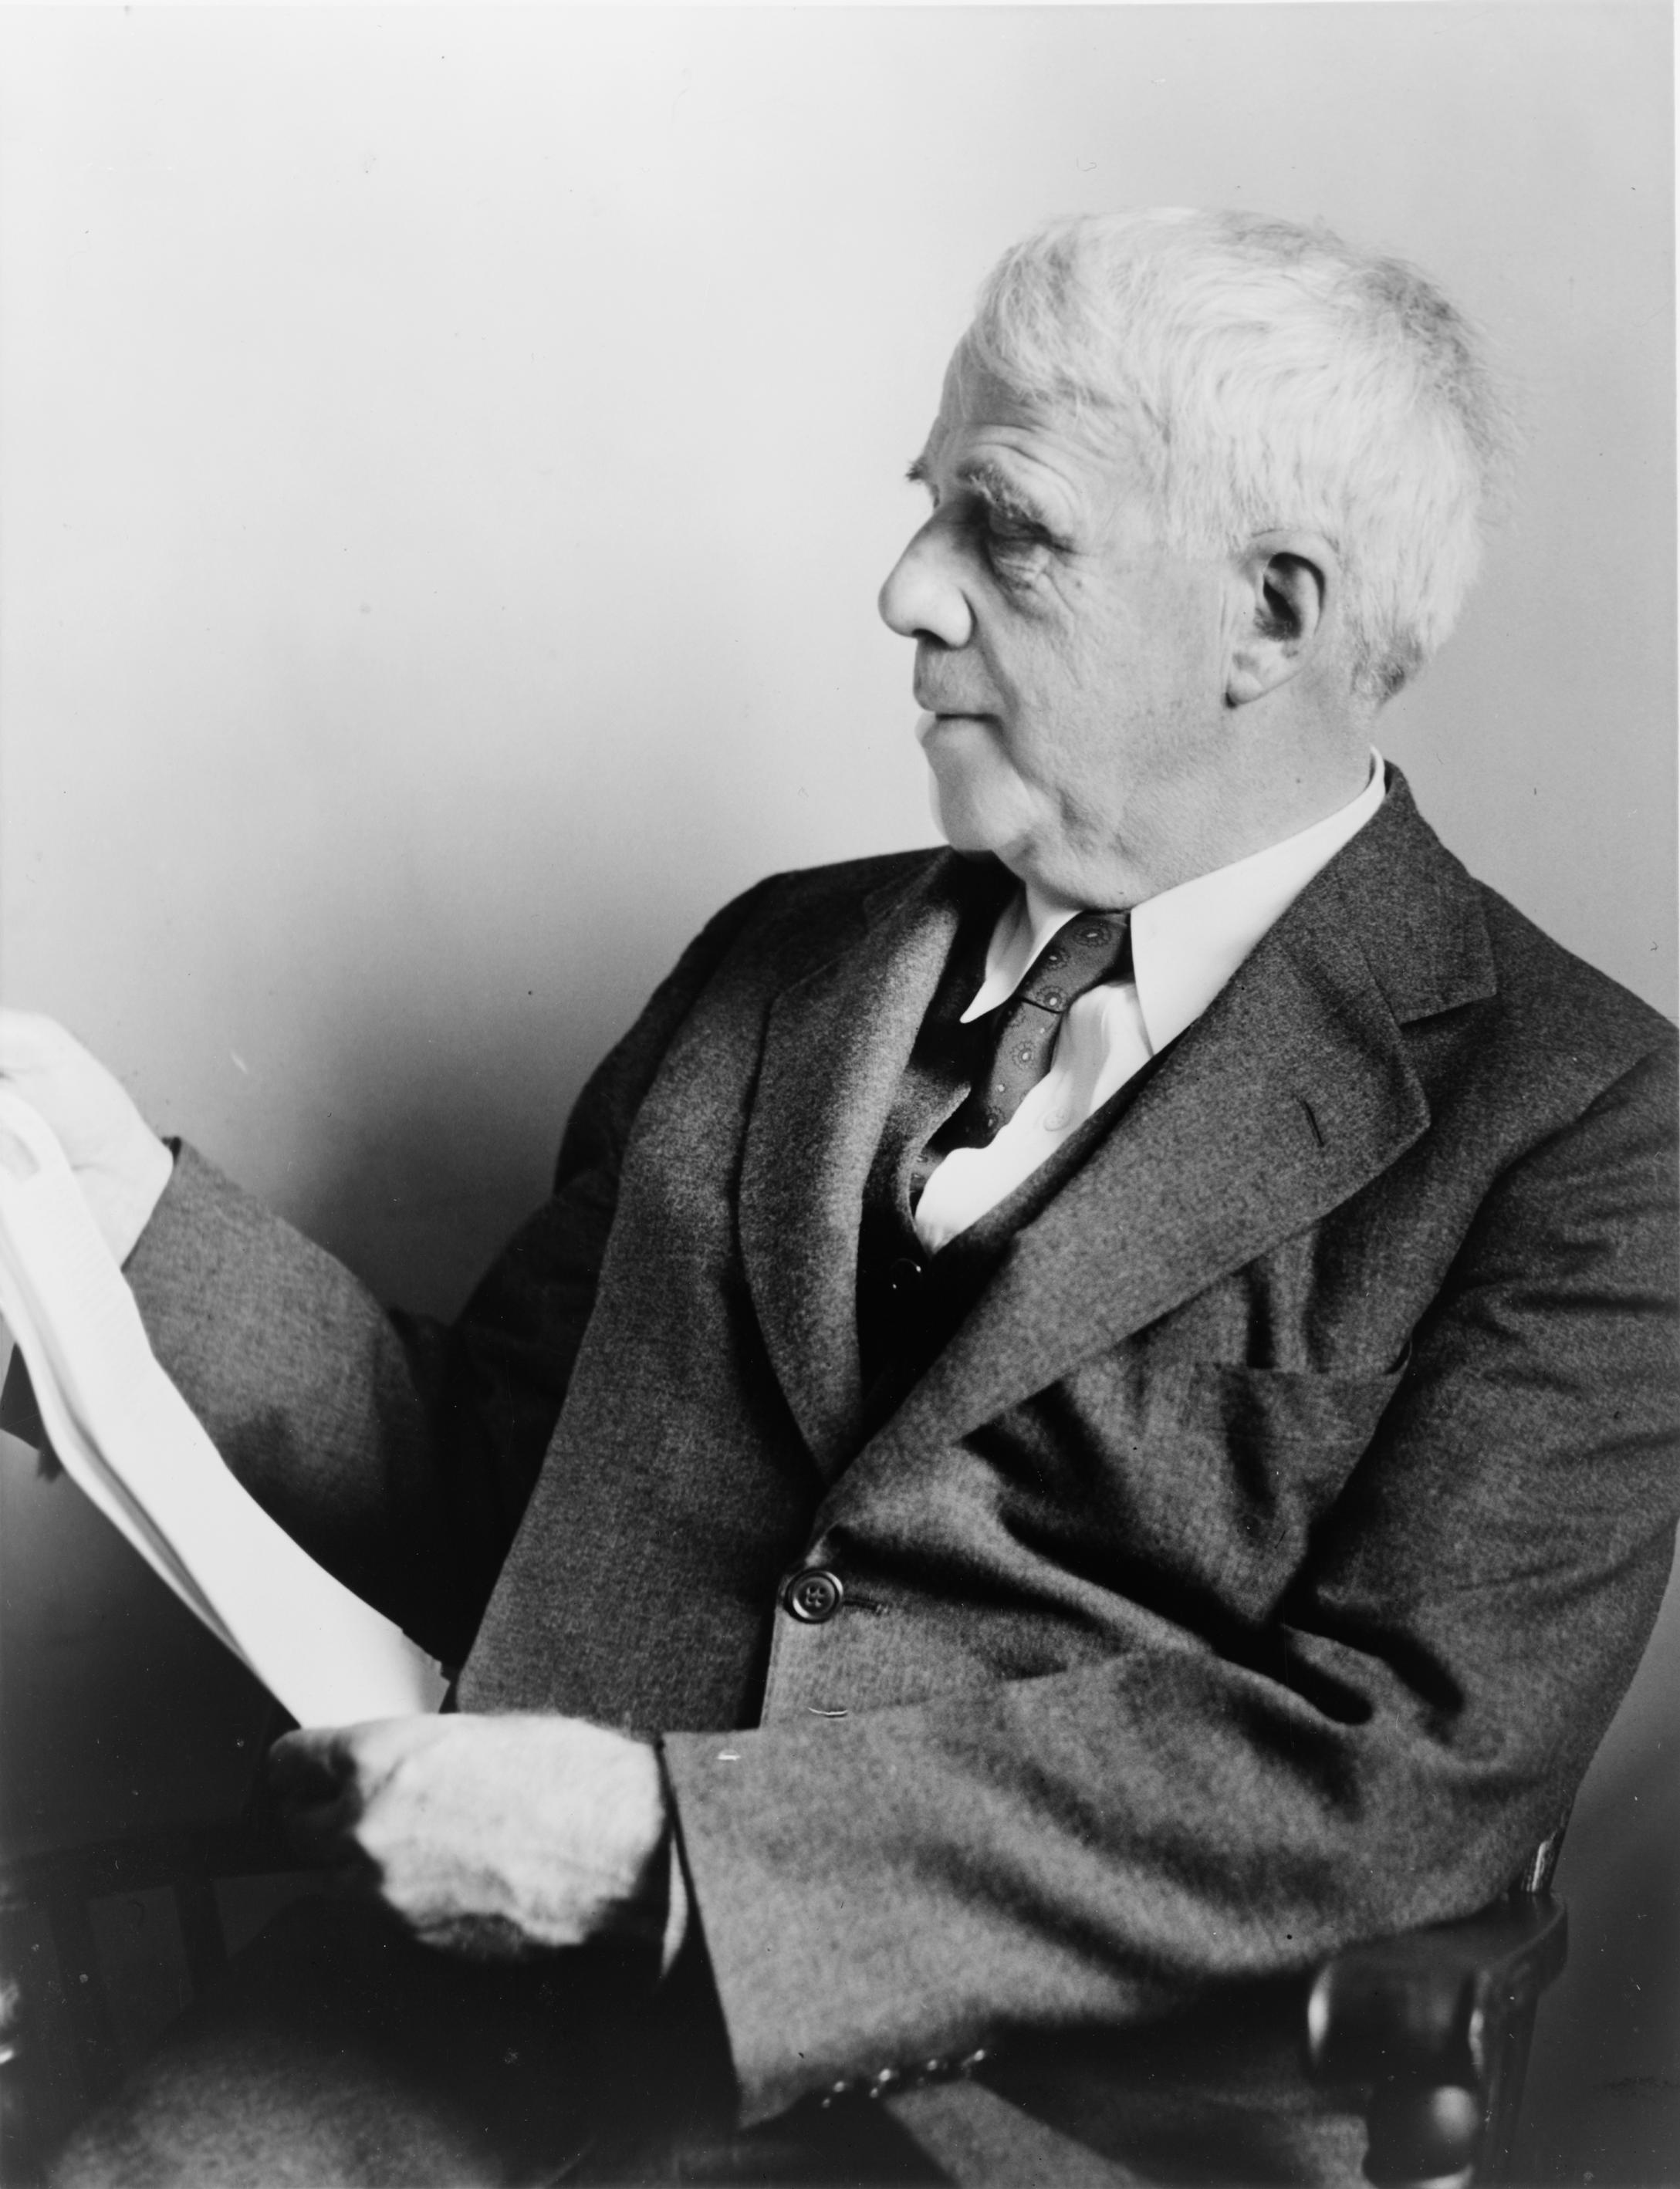 a biography of robert frost After frost's wife died in the thirties, he stepped up the pace of his public readings he must have gotten consolation from being robert frost, from being the image of himself that he had perfected with such genius.